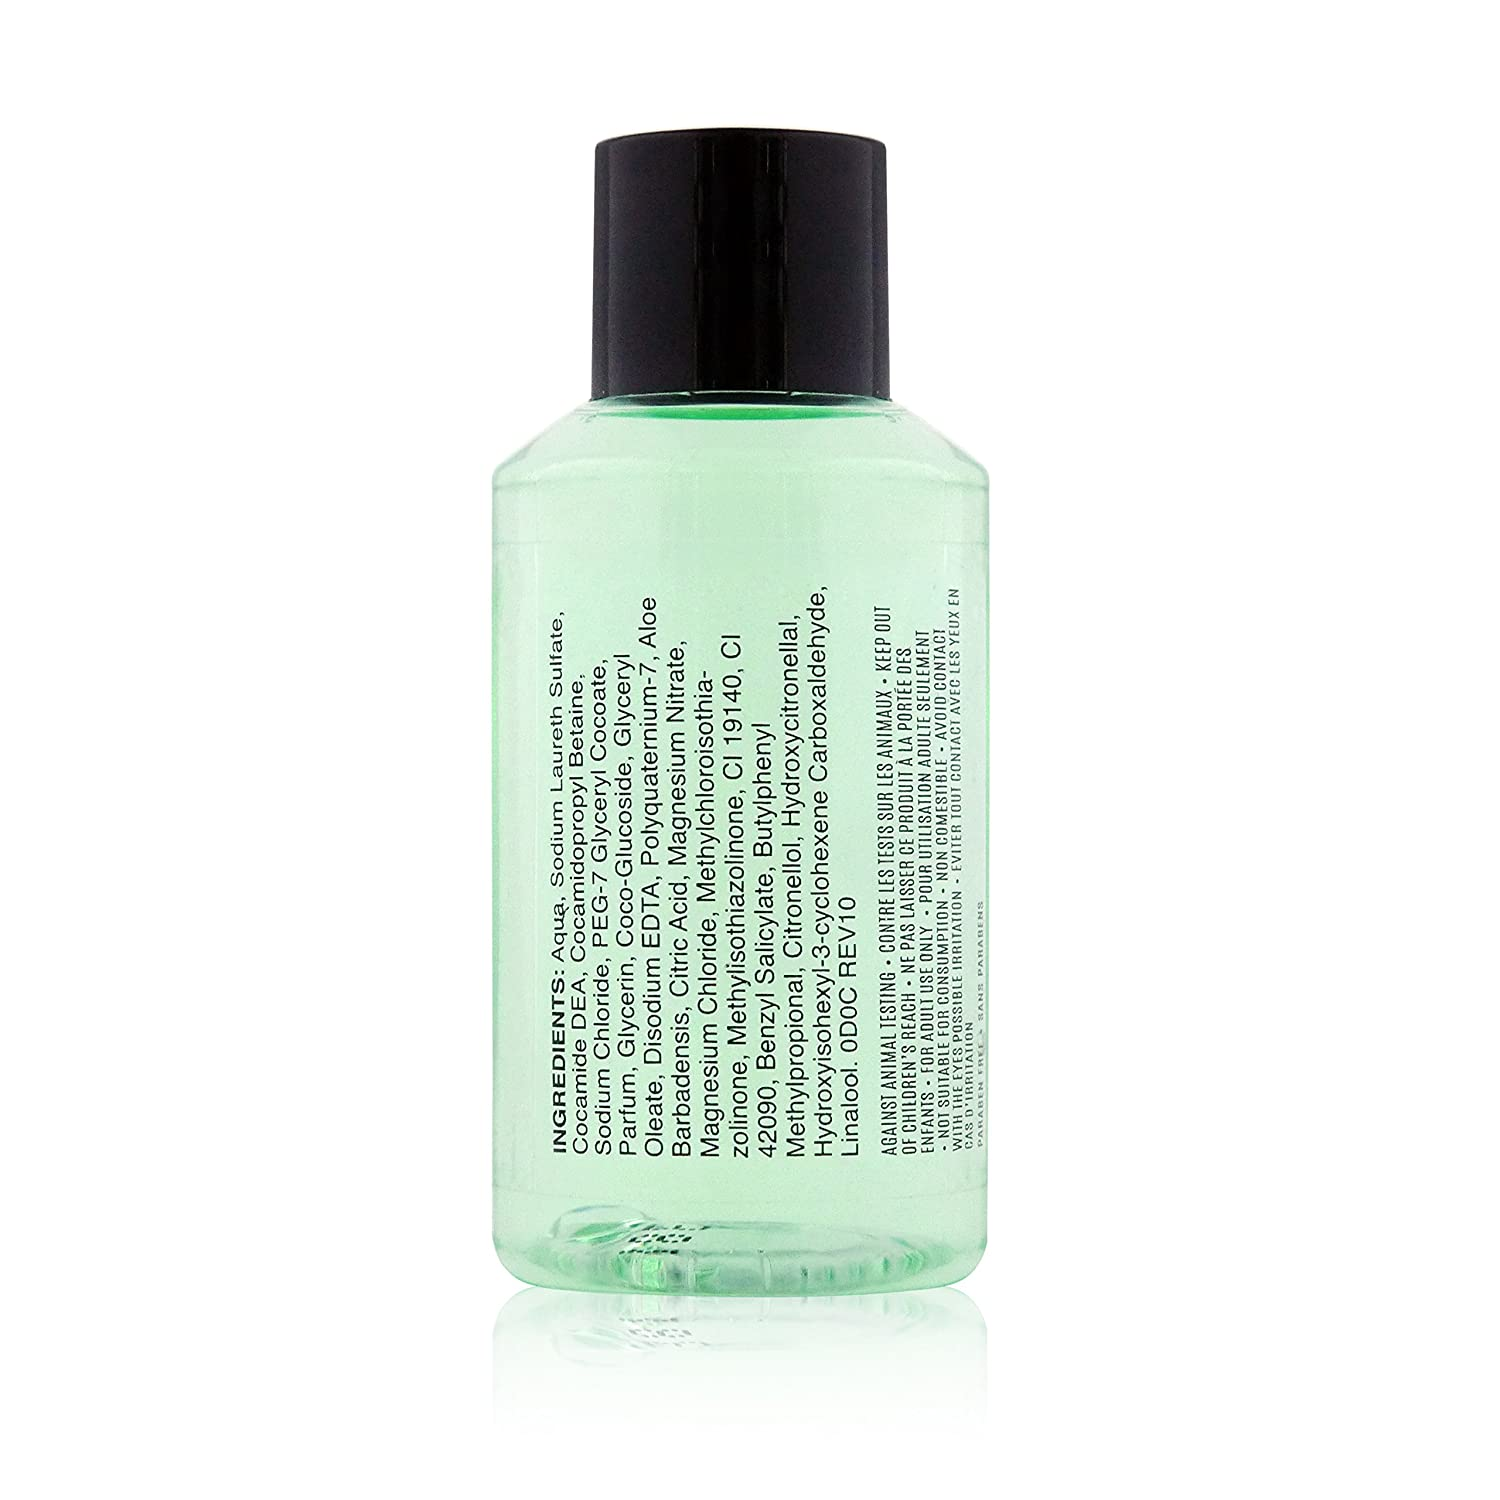 50X SEA KELP HOTEL GUEST TOILETRIES BATH & SHOWER GEL 50ML TRAVEL SIZE by Sea Kelp: Amazon.es: Salud y cuidado personal